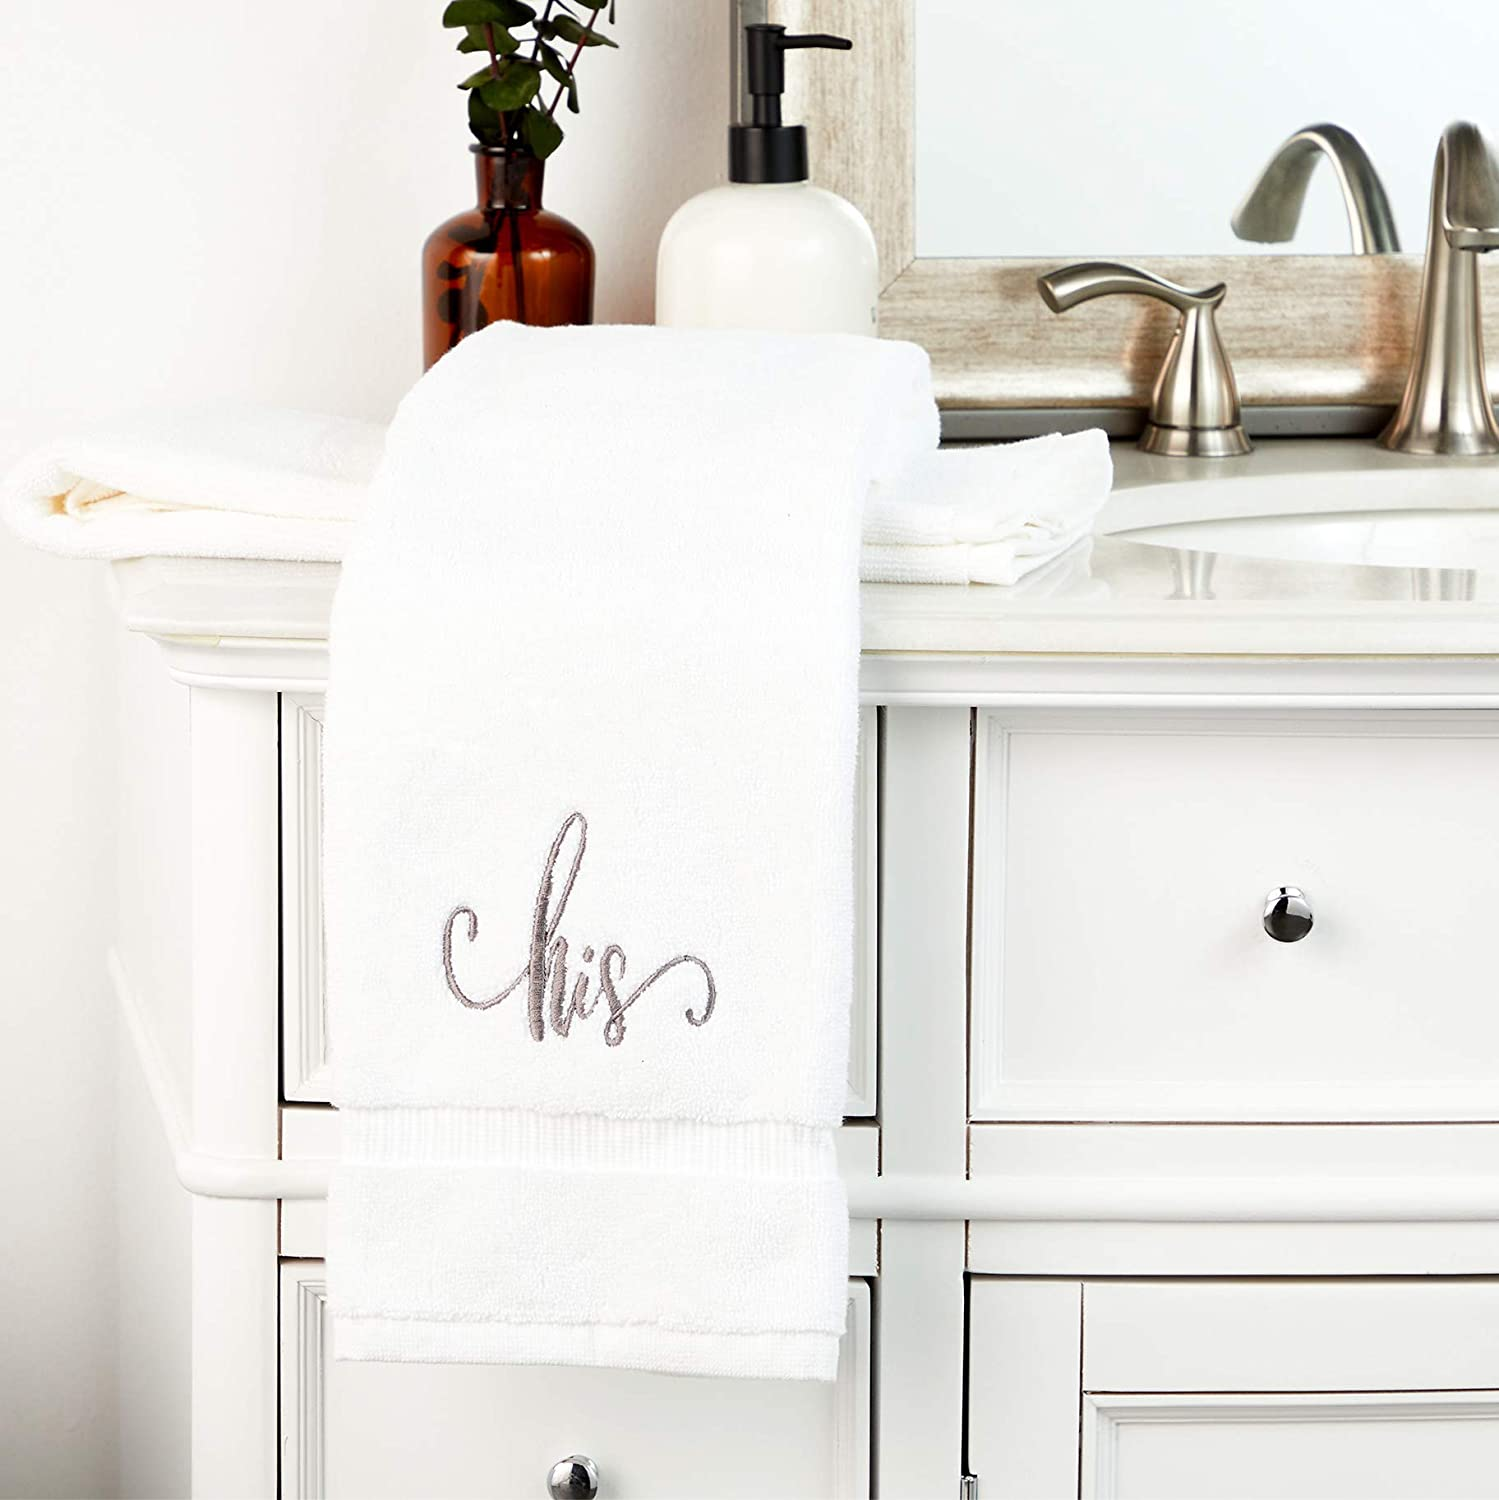 his and hers hand towels